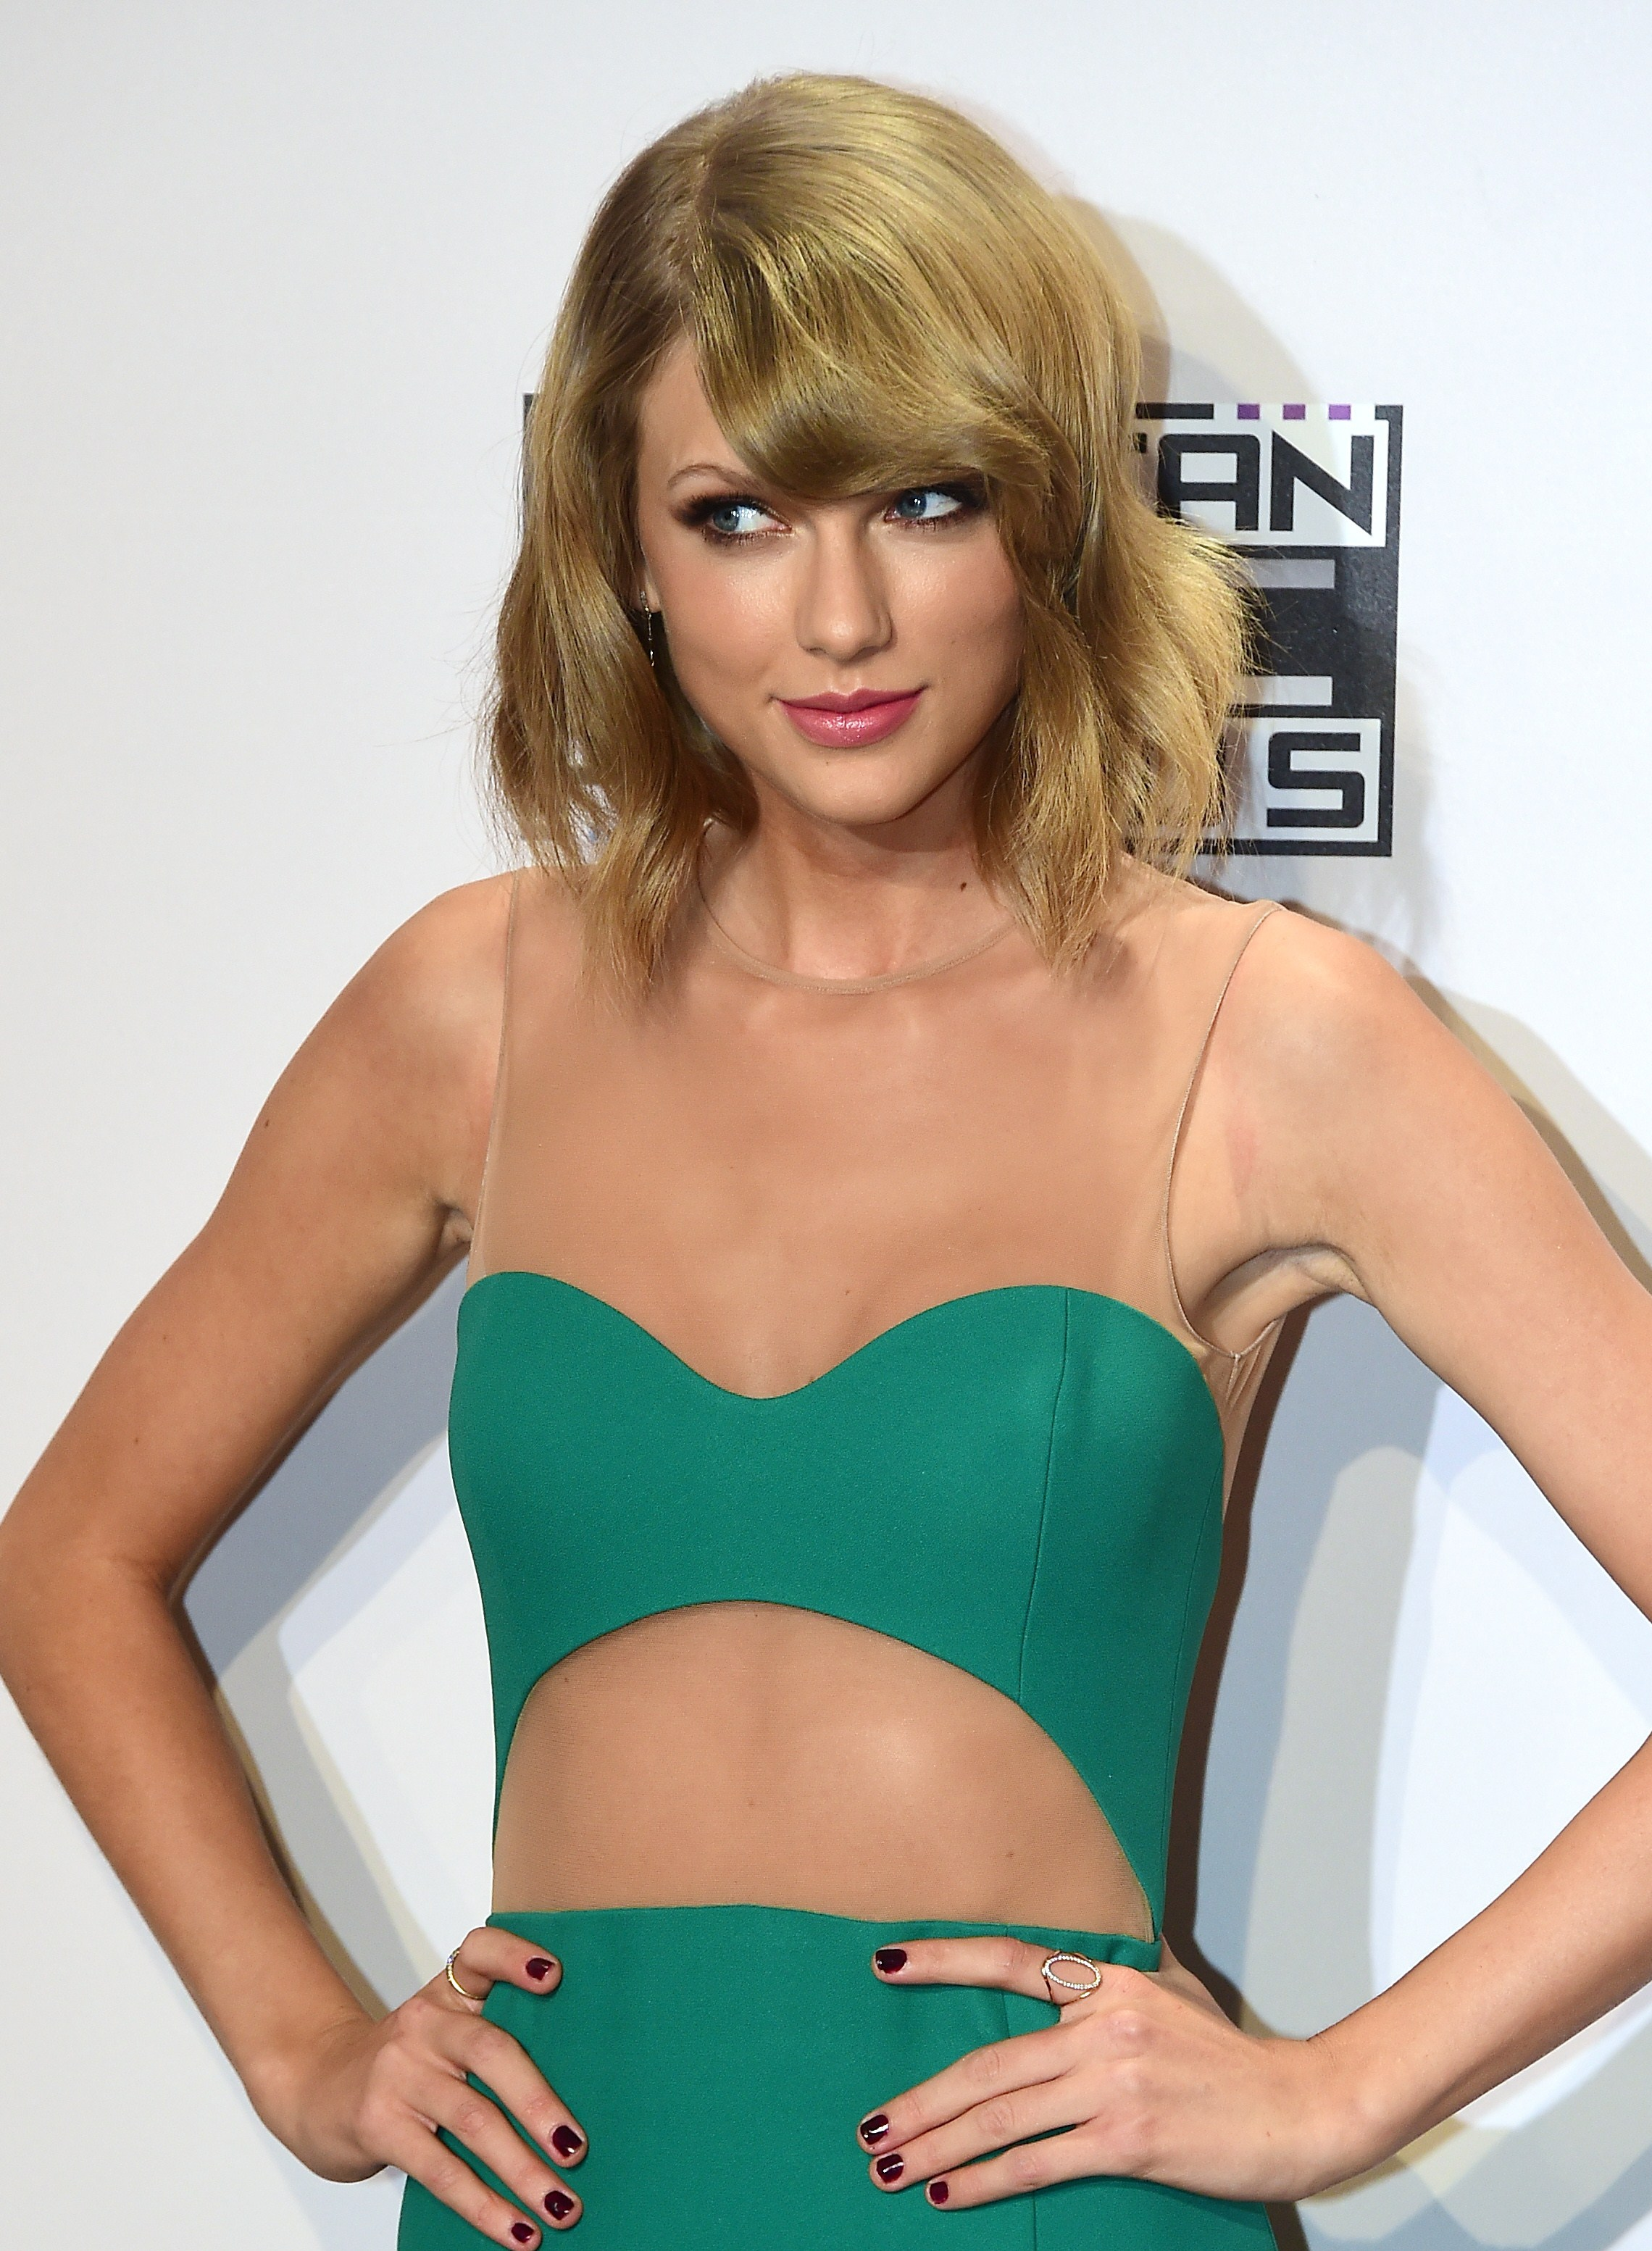 Taylor Swift Hilariously Addresses Those Leg Insurance Rumors On Her Instagram With The Help Of Meredith Grey